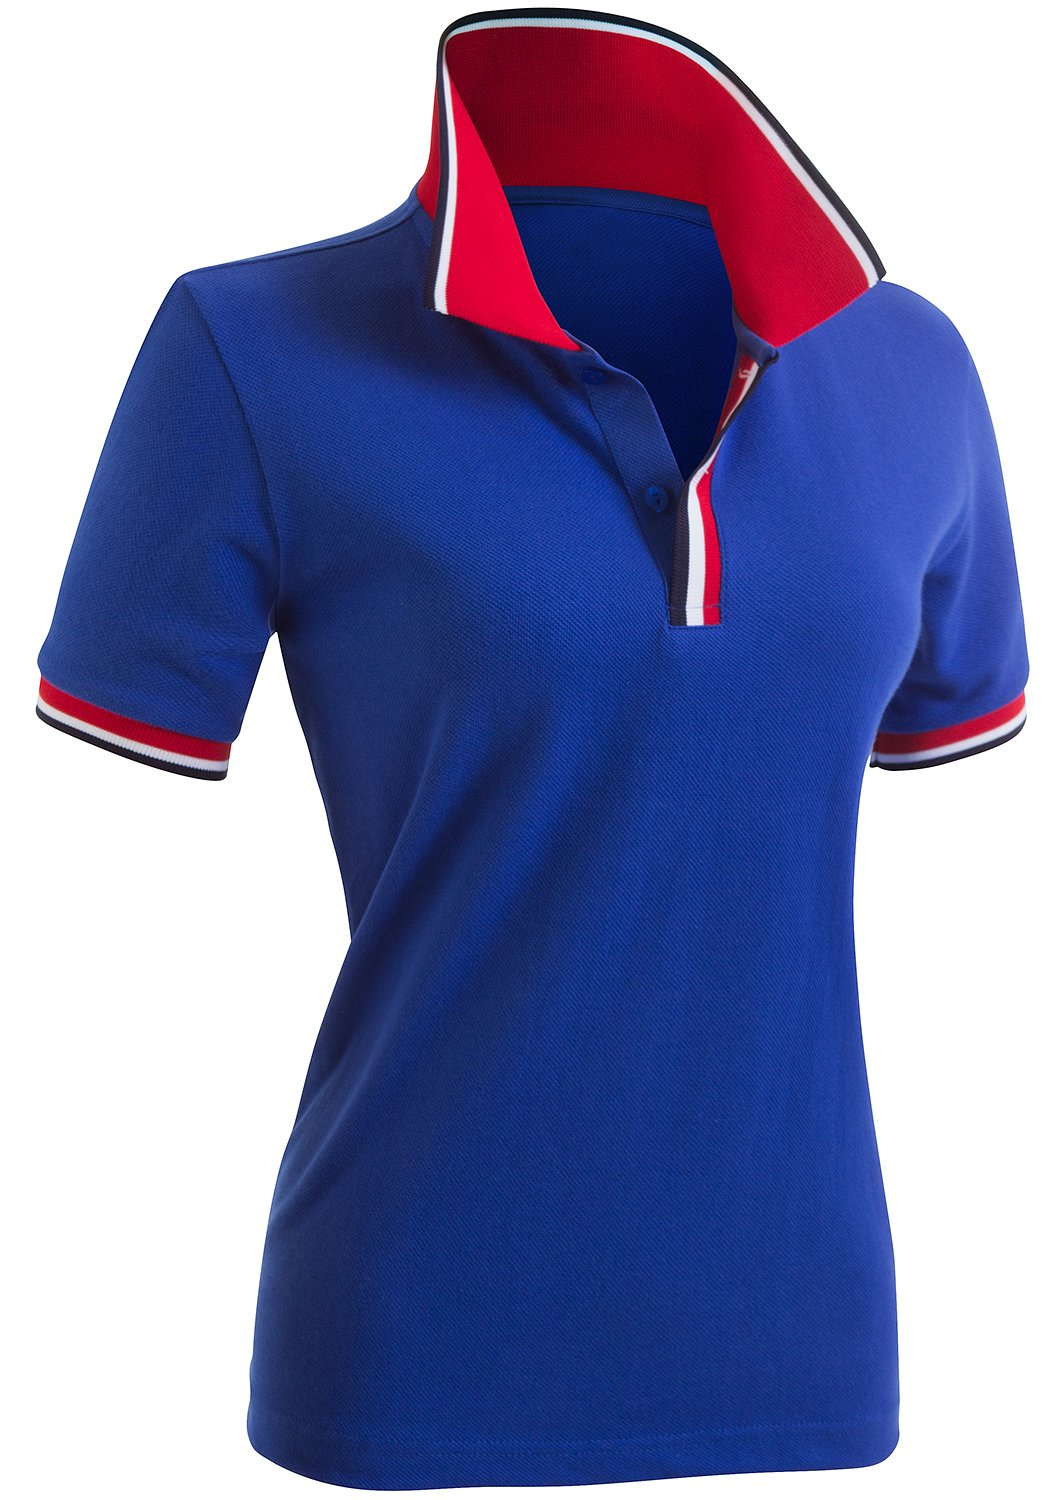 CLOVERY Women's Comfortable Fabric Short Sleeve Polo Cobalt US XL + / Tag XXL by CLOVERY